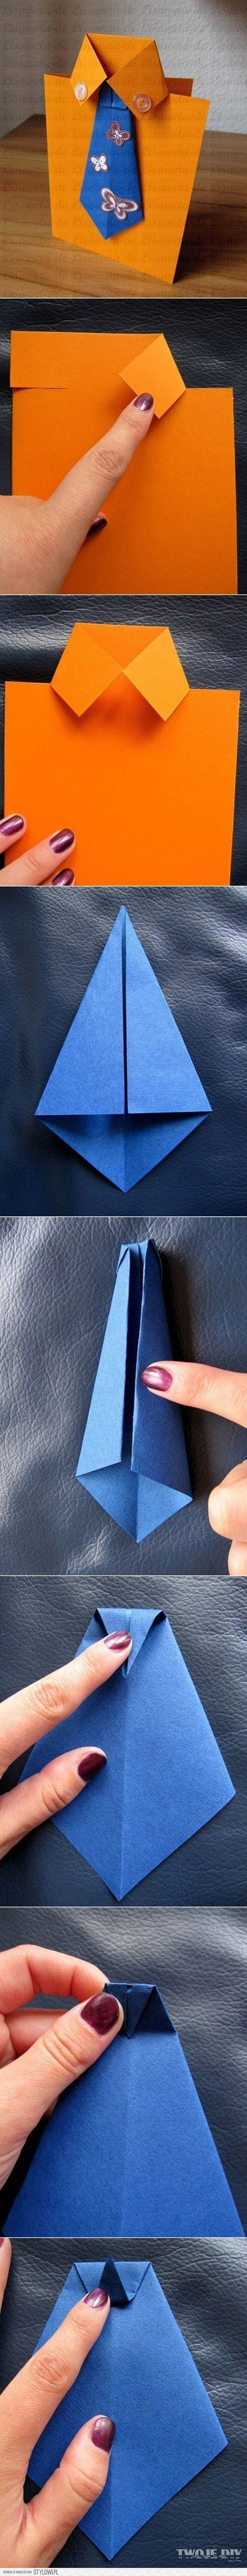 Cute DIY Father's Day Card Ideas   Necktie Card by DIY Ready at http://diyready.com/21-diy-fathers-day-cards/: